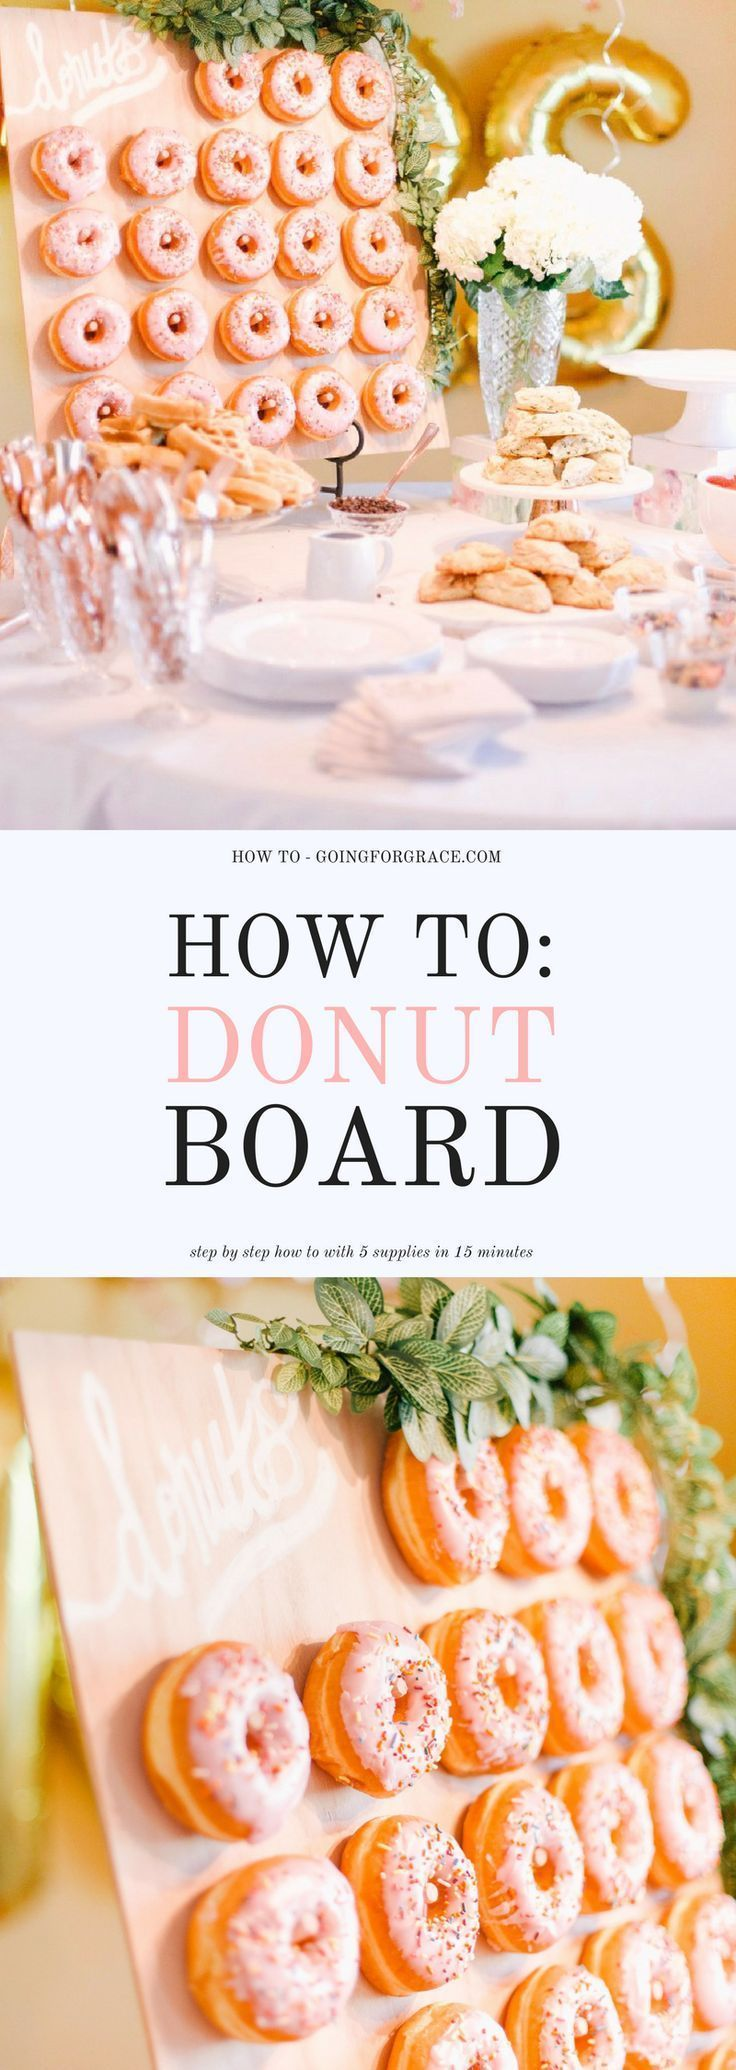 Wedding decorations using tulle october 2018 How To Make a Donut Board in   Party Inspiration  Pinterest